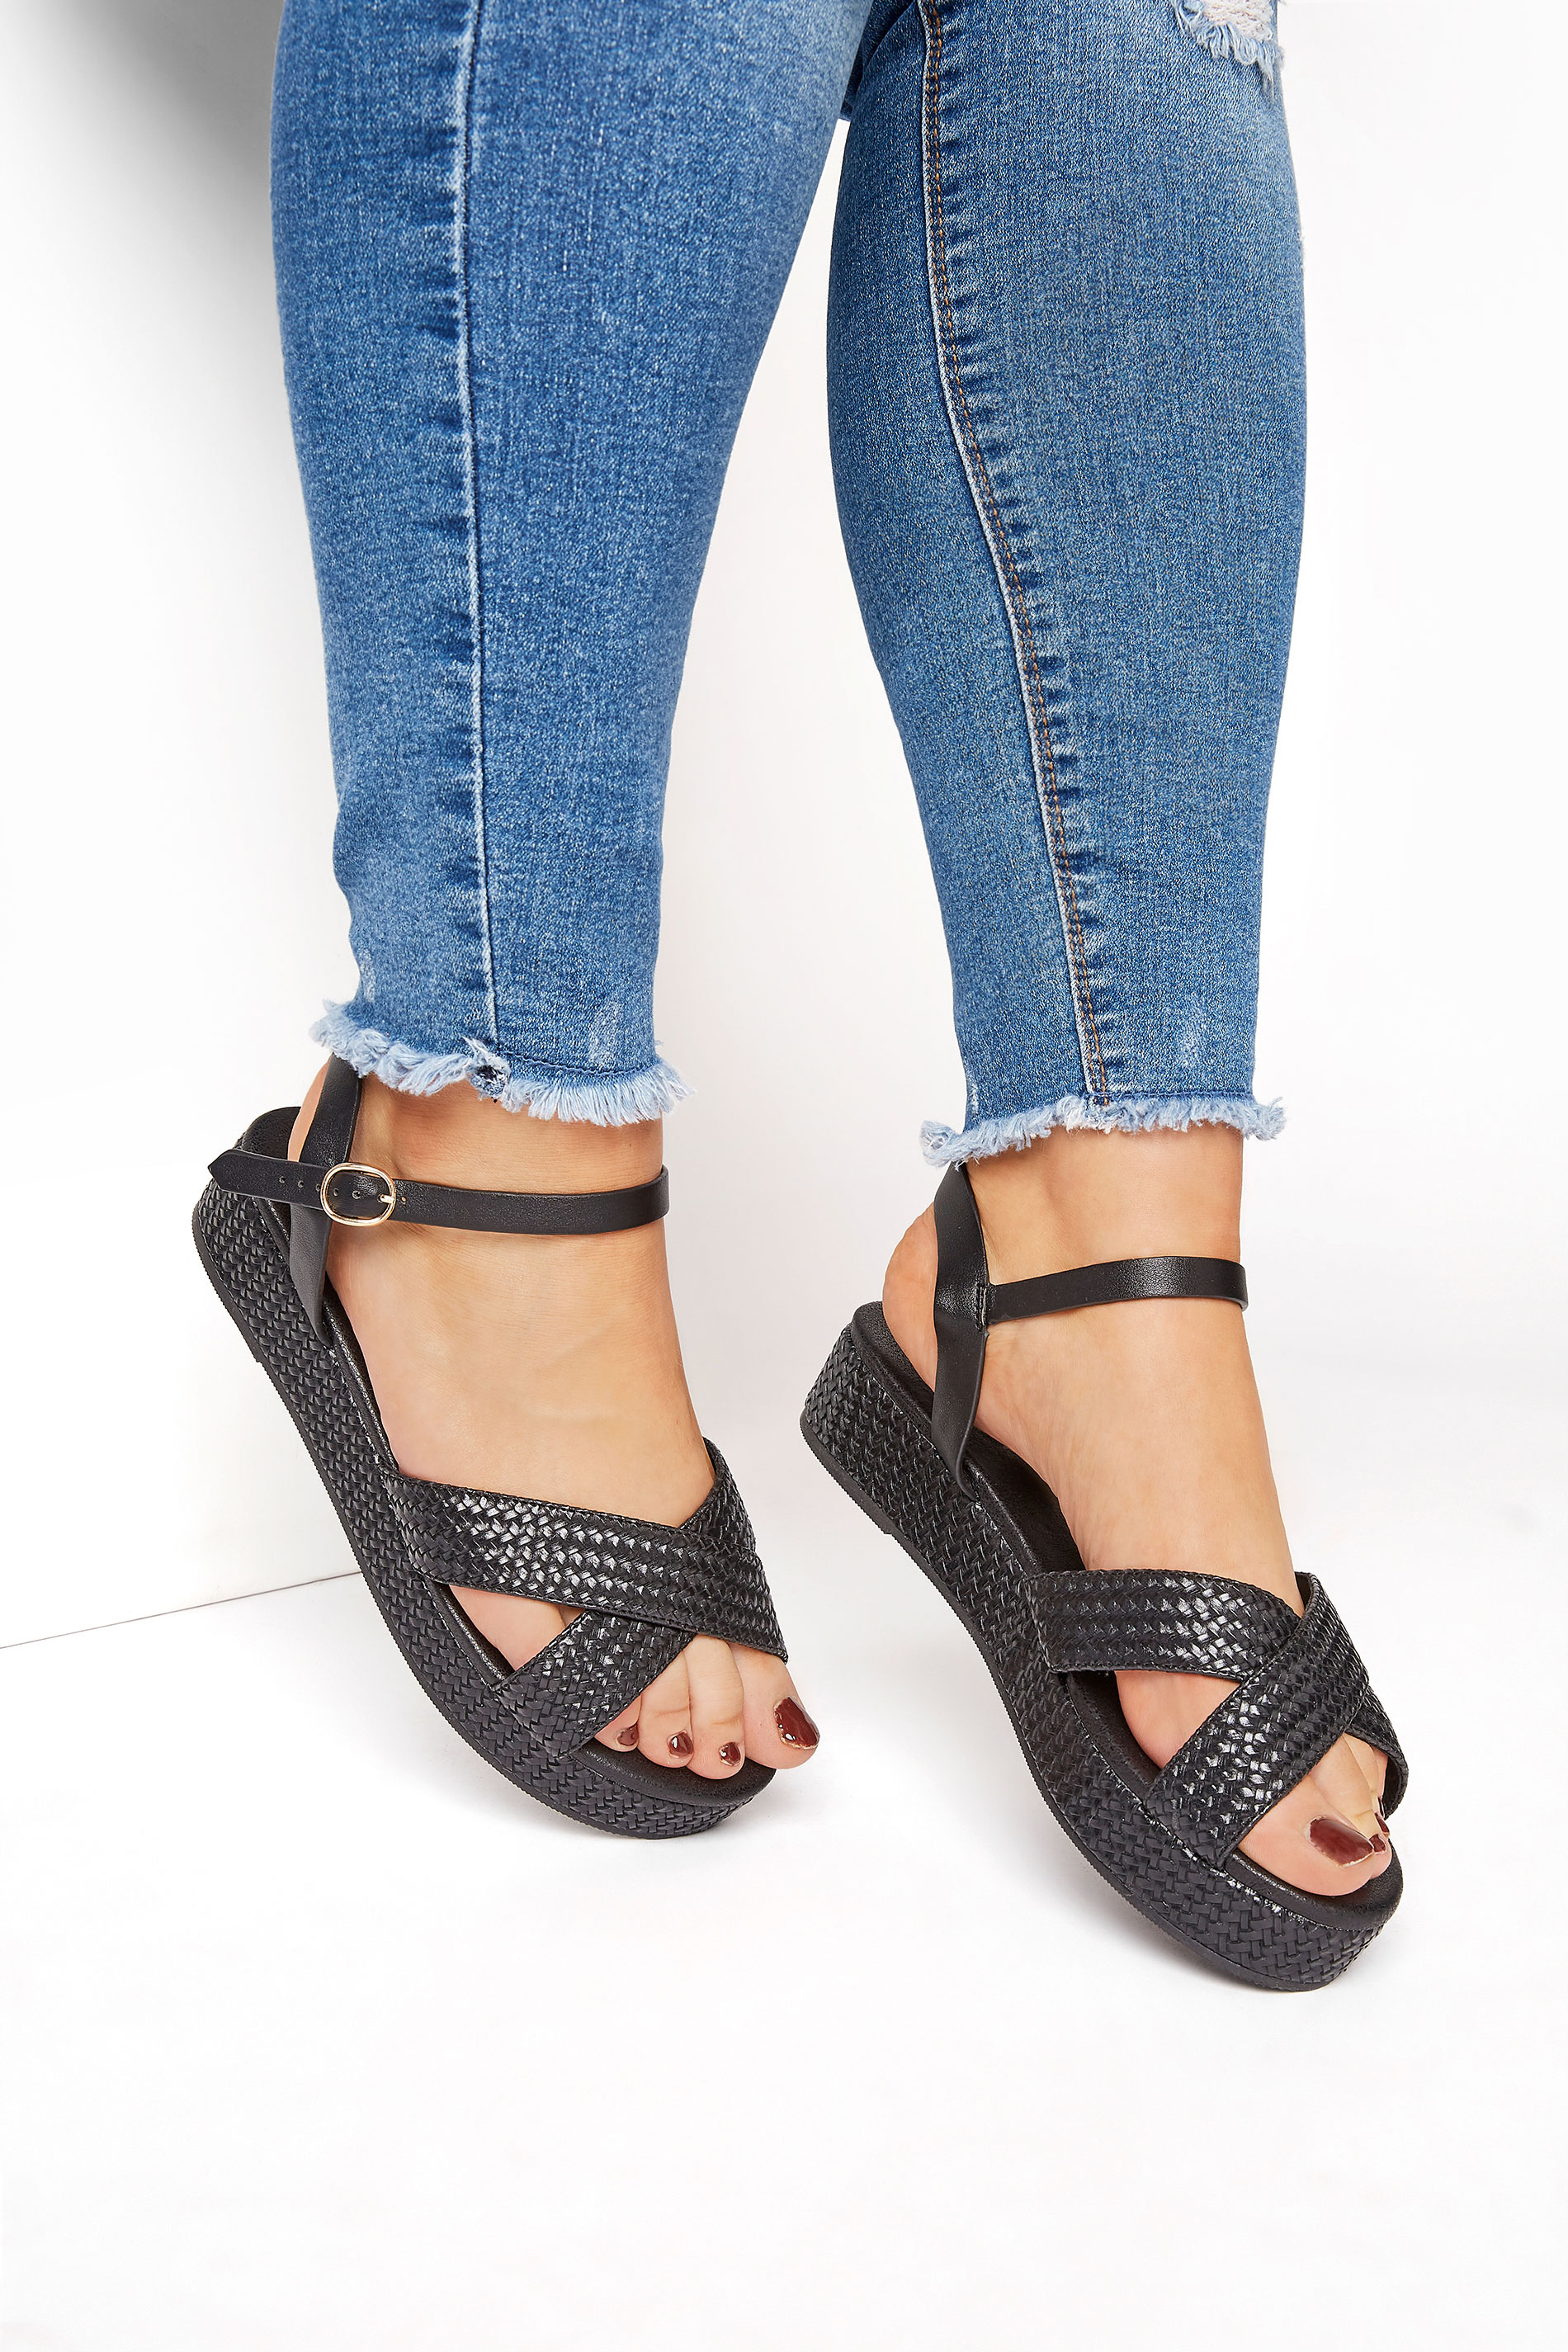 Yours LIMITED COLLECTION Black Weave Platform Sandal In Extra Wide Fit